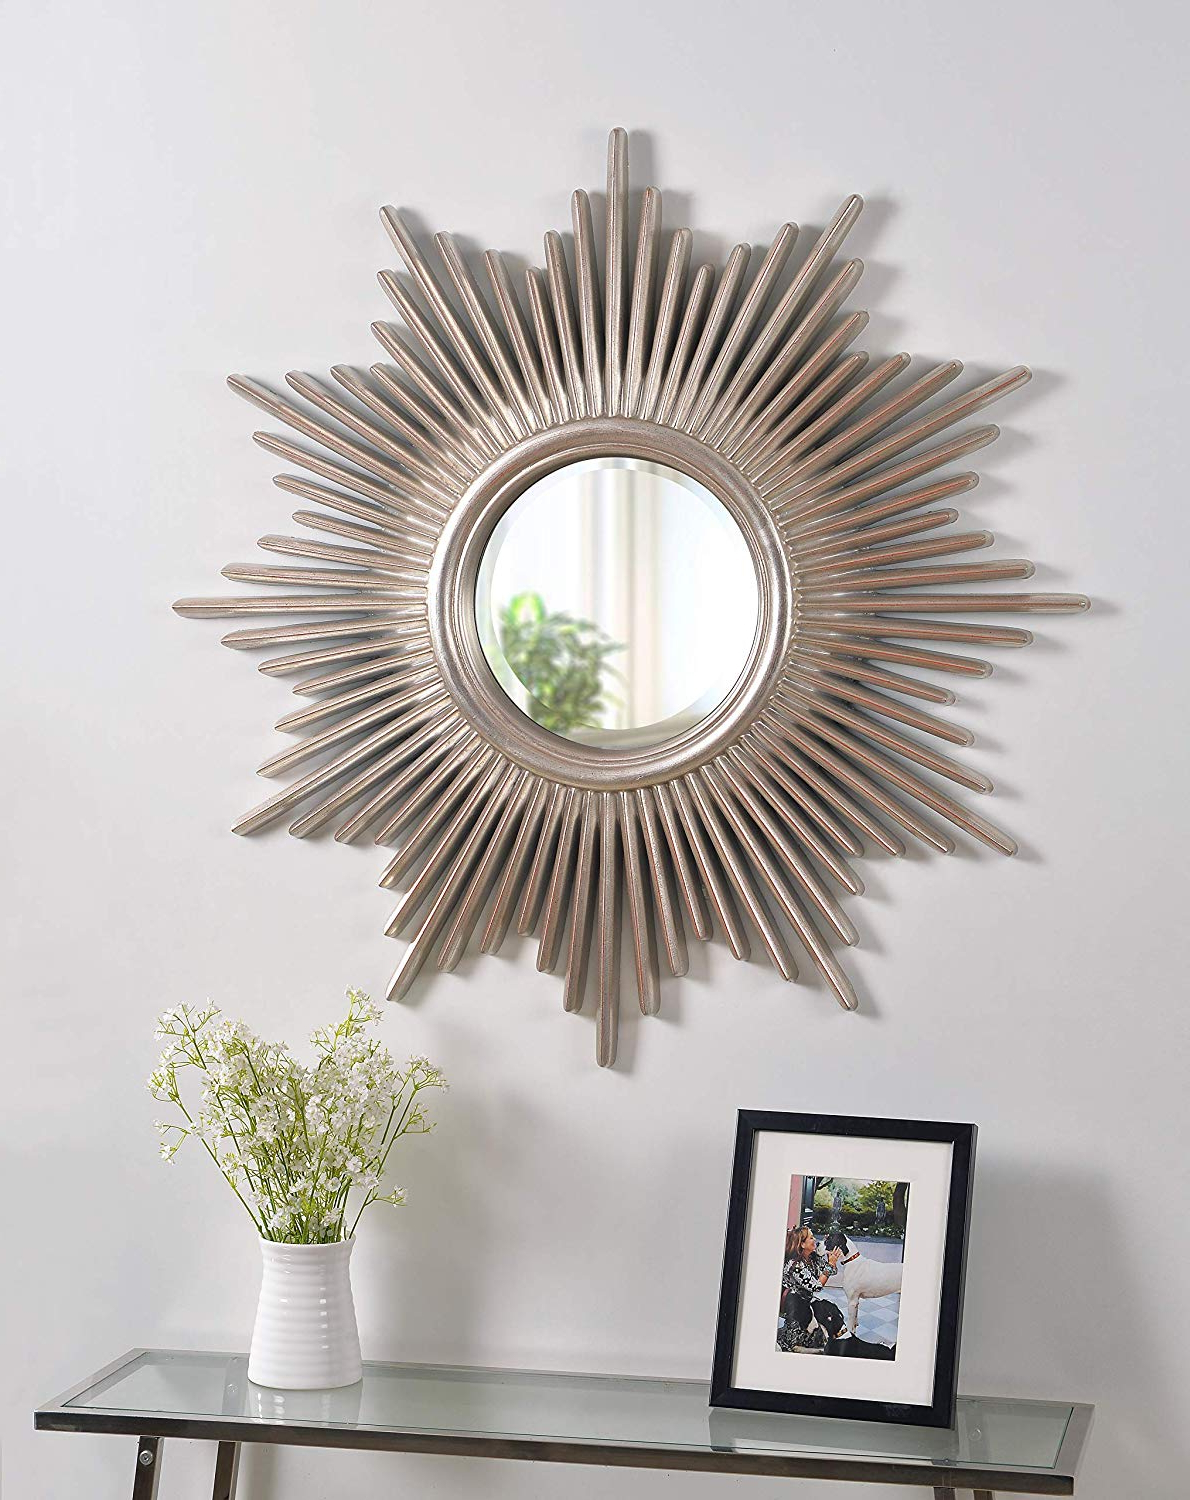 Fashionable Point Reyes Molten Round Wall Mirrors Intended For Kenroy Home Reyes Wall Mirror, 36 Inch Height, 36 Inch Diameter,  (View 6 of 20)